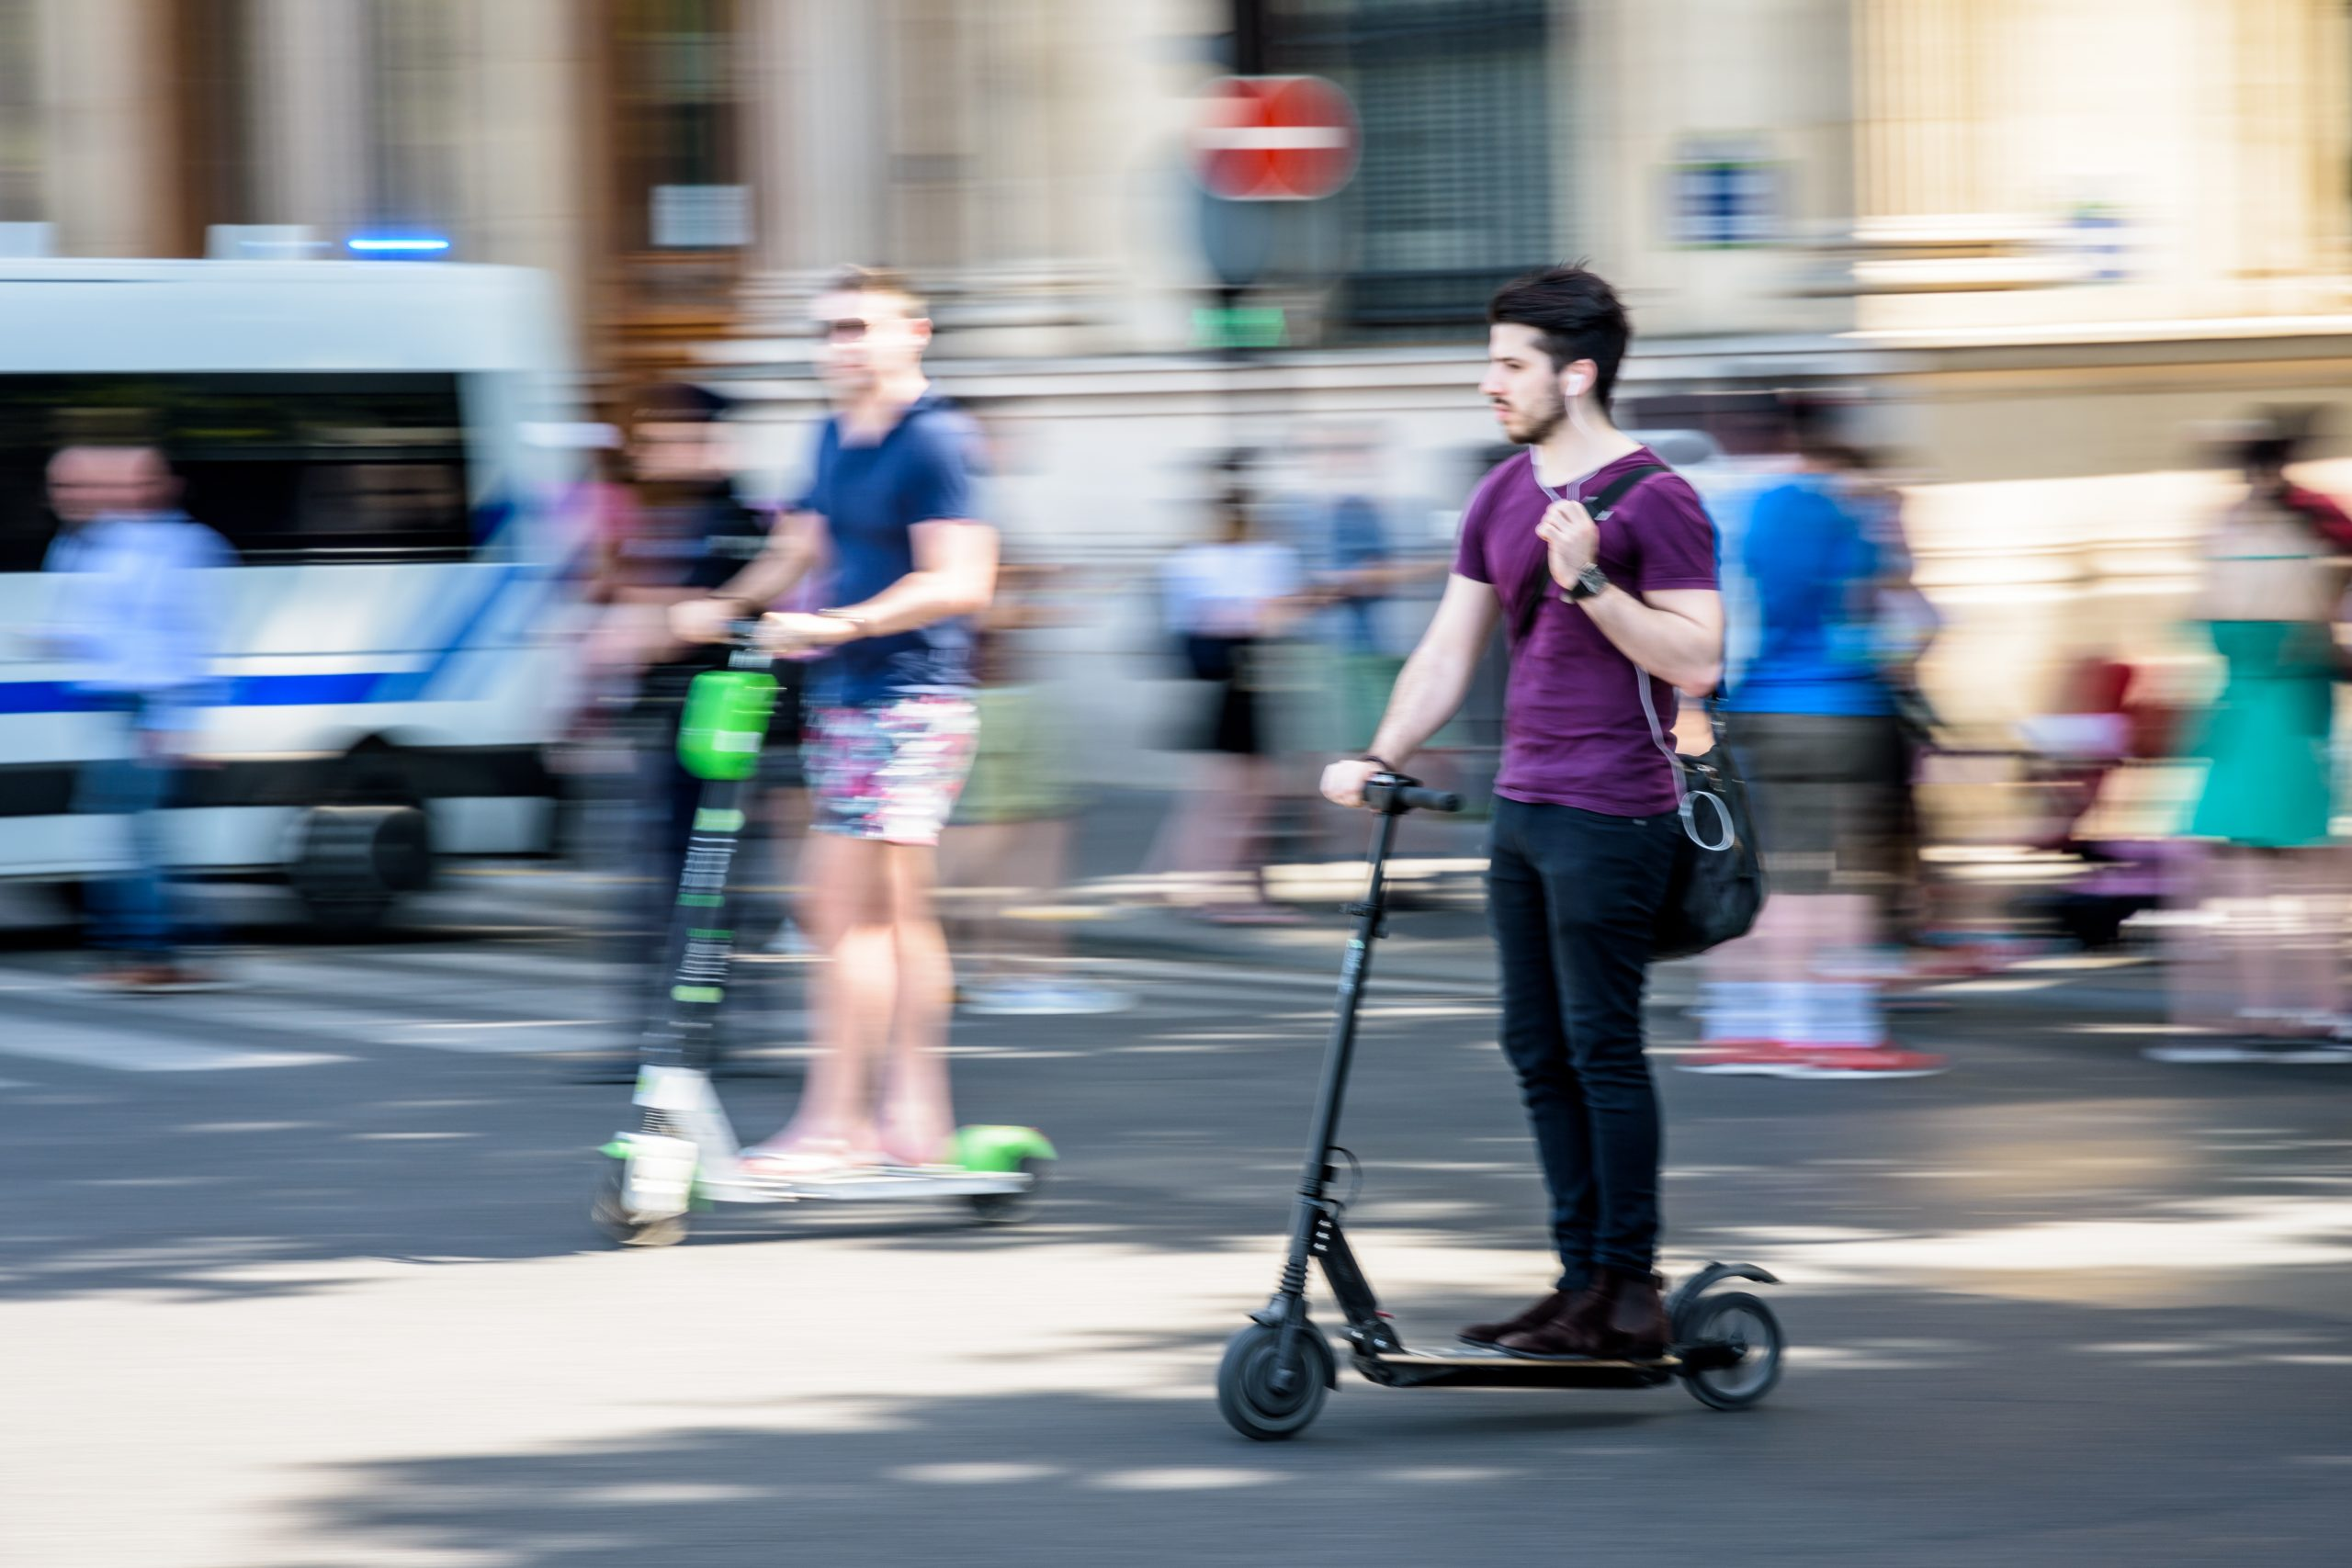 Young man without a helmet riding an electric scooter on a busy city street